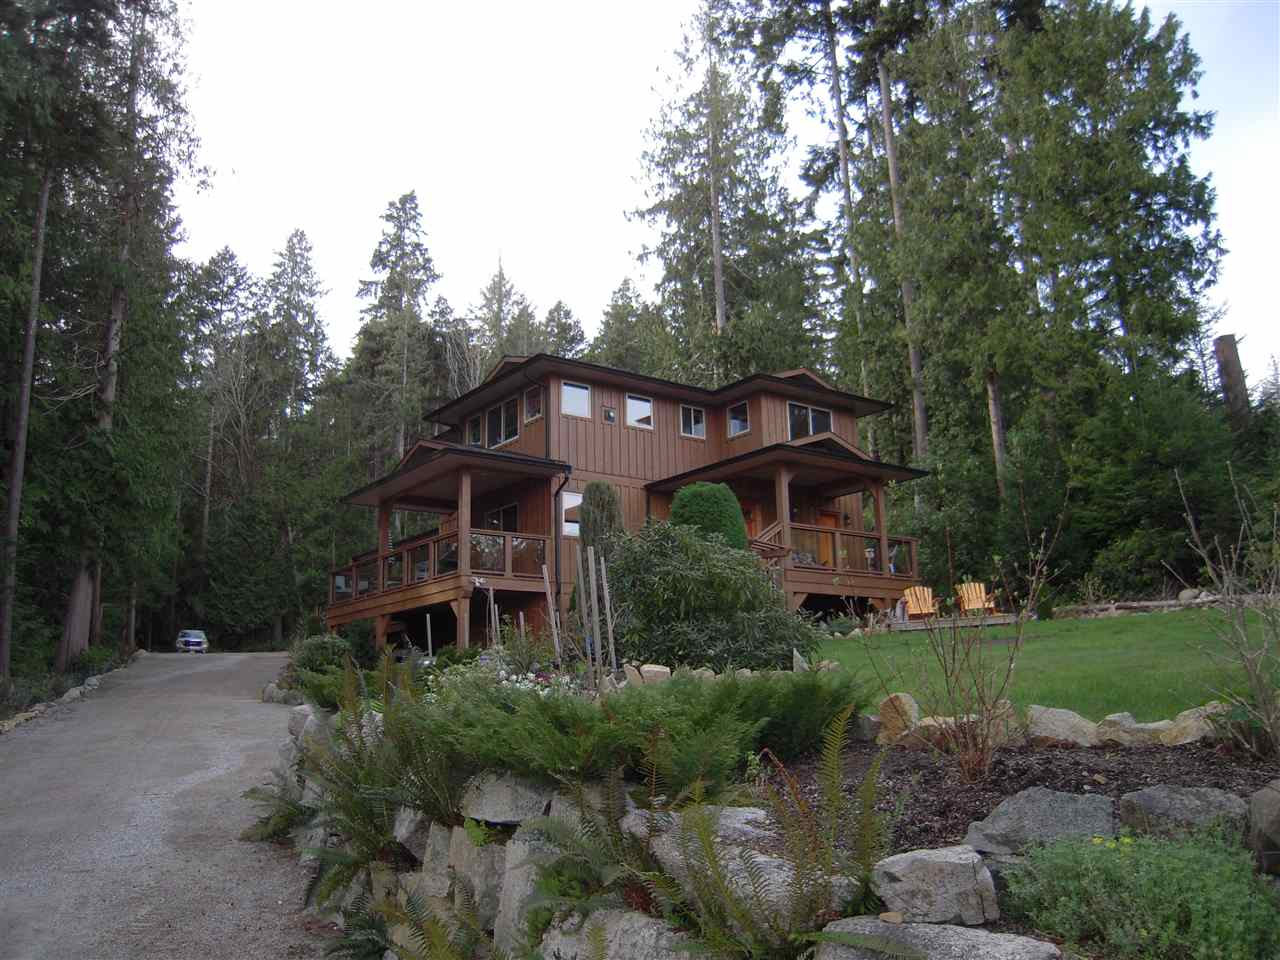 Main Photo: 5447 WAKEFIELD Road in Sechelt: Sechelt District House for sale (Sunshine Coast)  : MLS®# R2047962